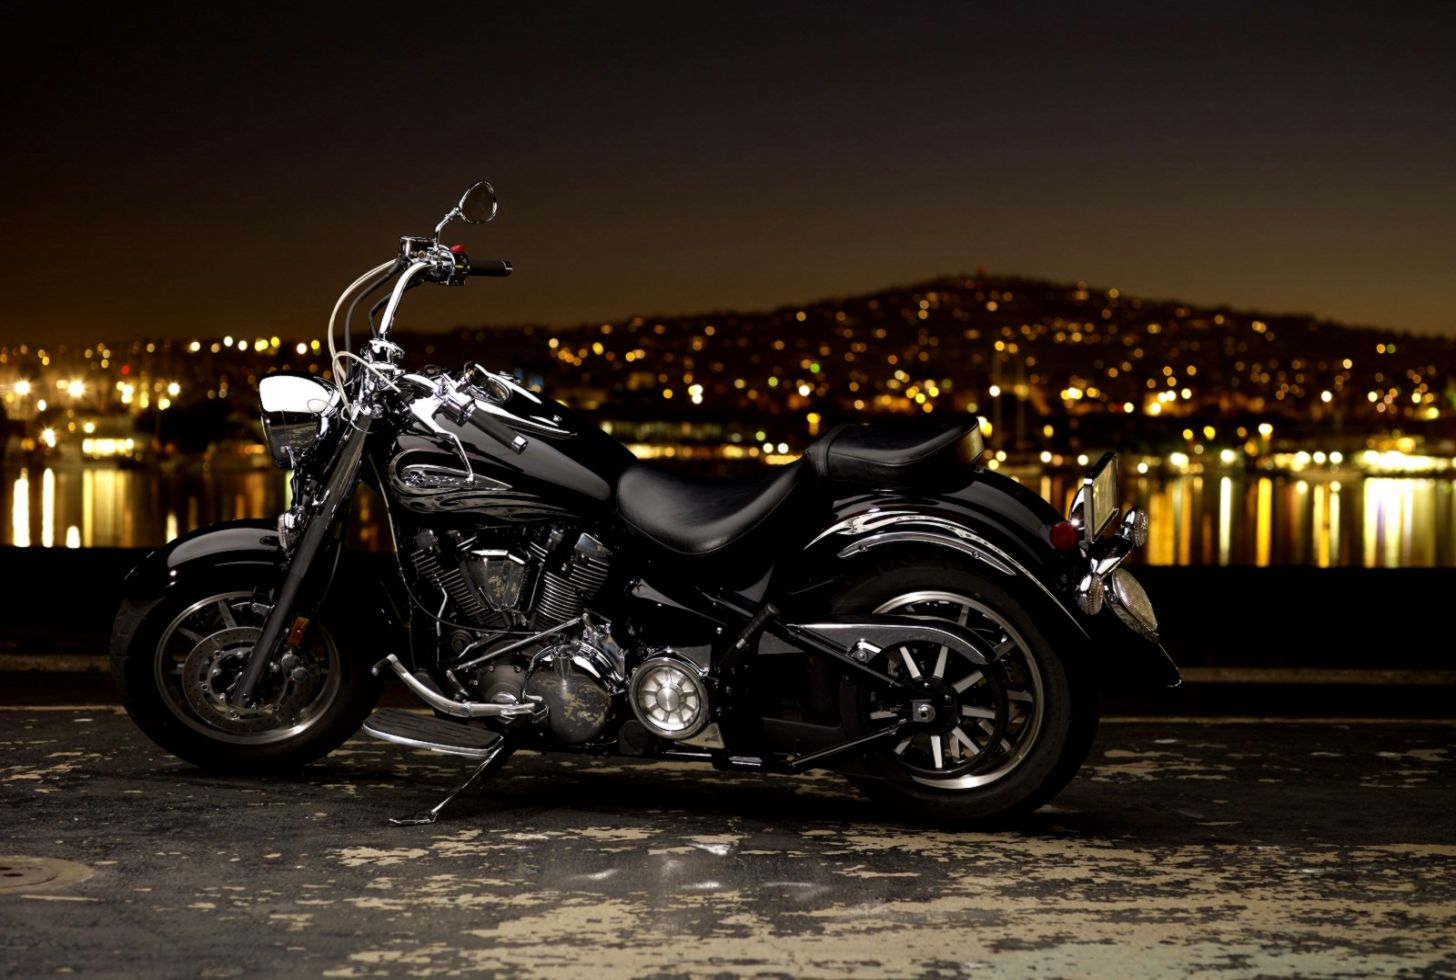 Yamaha V Star Wallpaper Hd | Opera Wallpapers